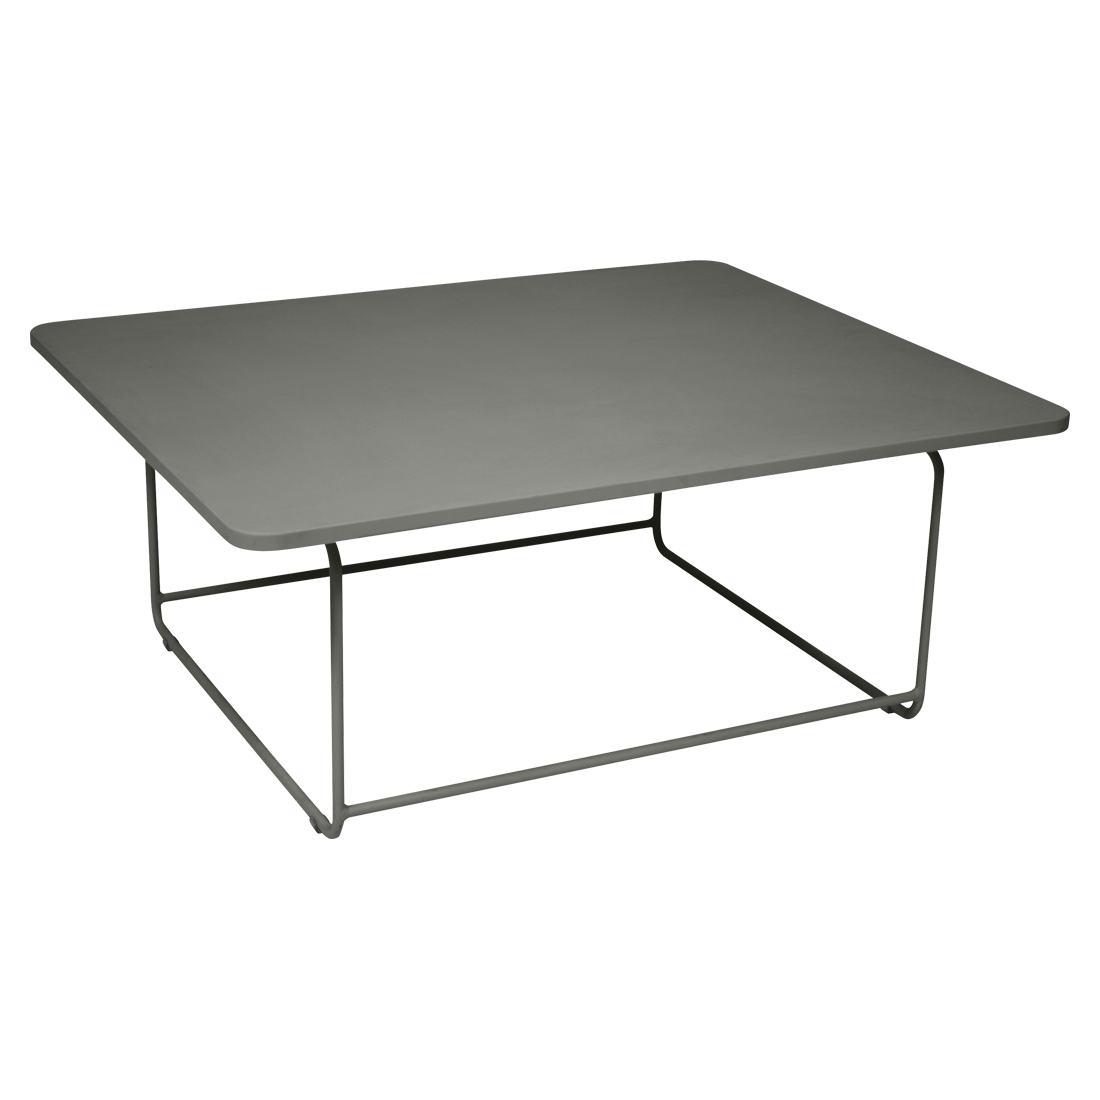 Ellipse Low Table Metal Table For Outdoor Living Space Low